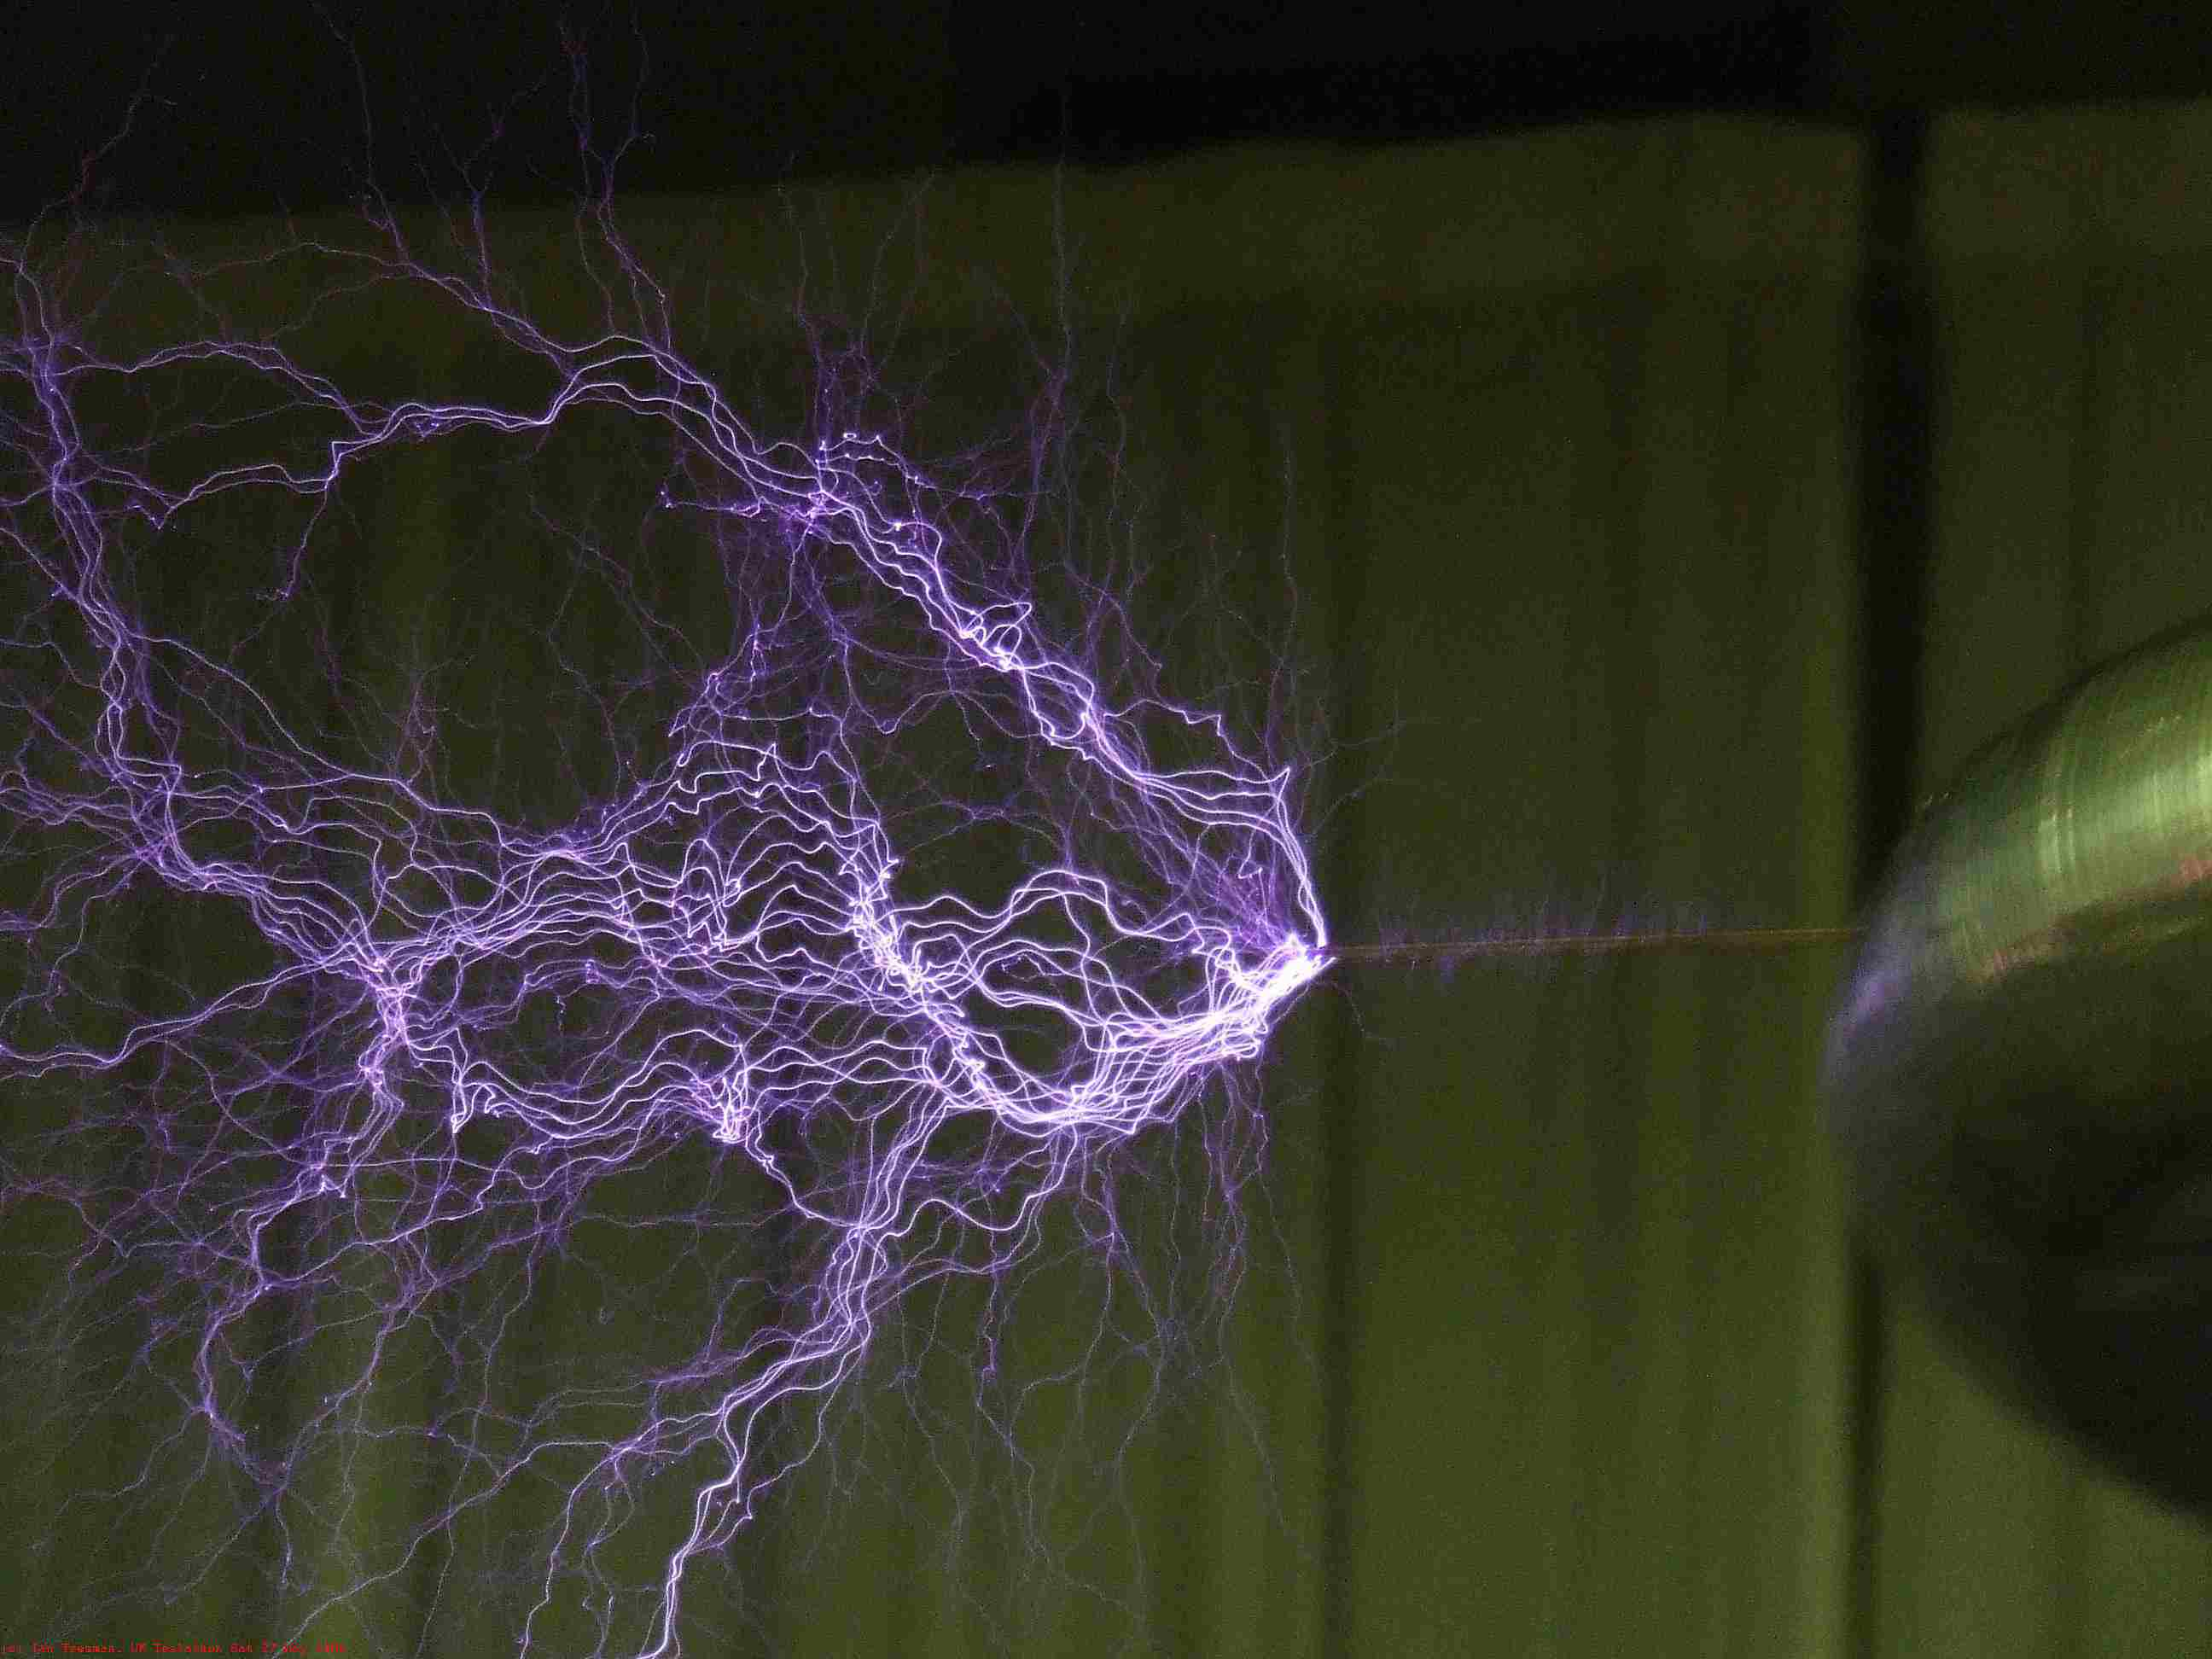 Plasma filaments from the electrical discharge of a Tesla coil.